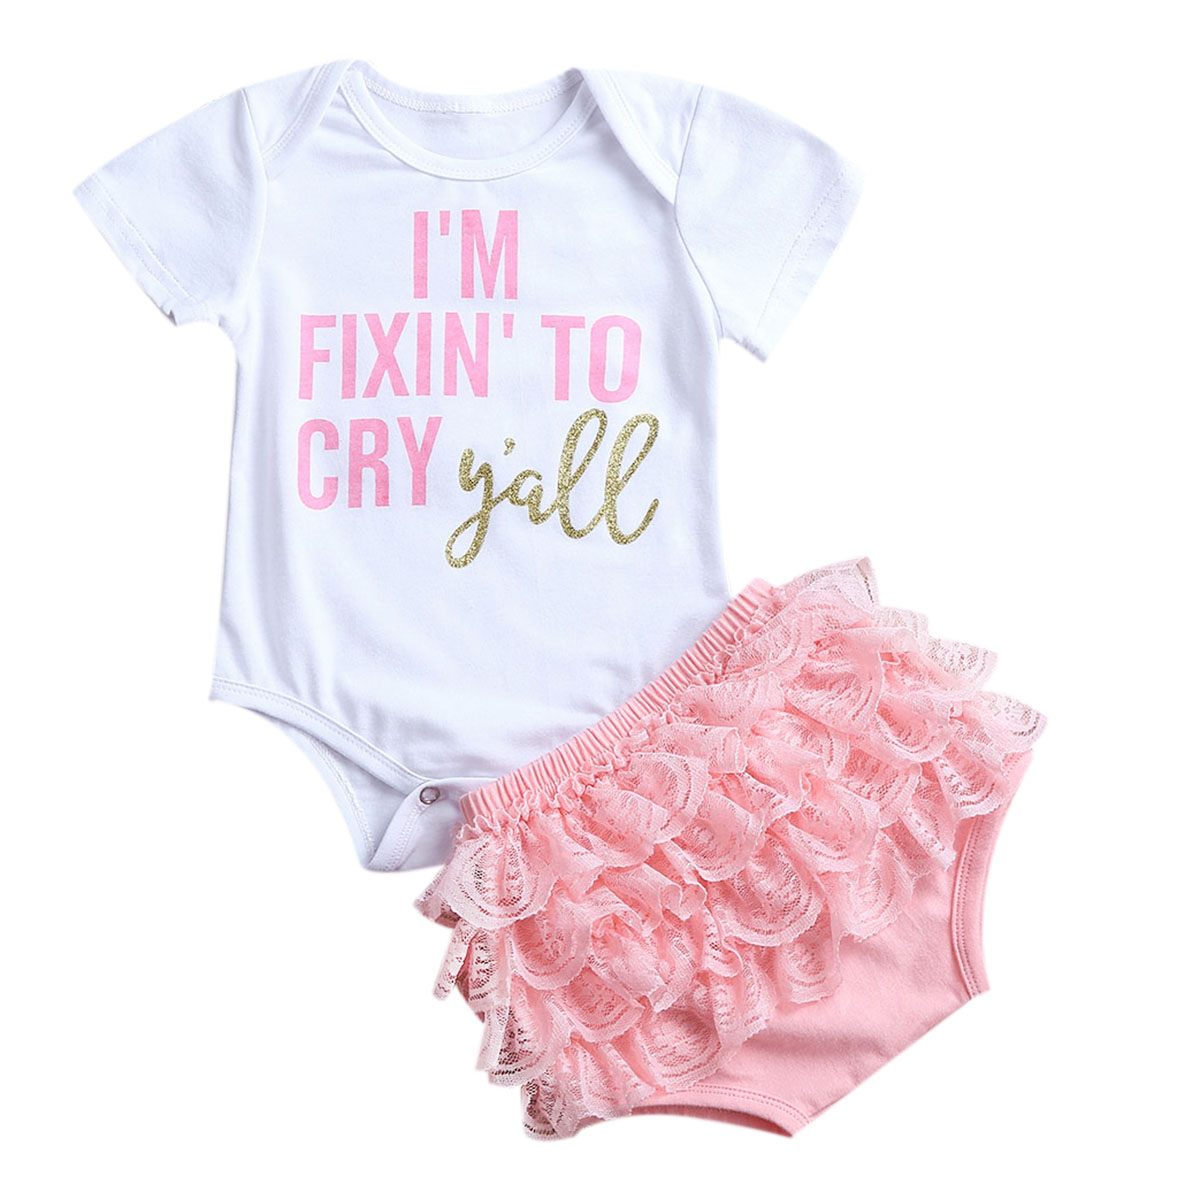 2Pcs Newborn Infant Baby Girls Outfits Romper Jumpsuit Bodysuit+Lace Tutu Dress Summer Baby Girls Clothing Set himipopo 2 pcs baby girls bodysuit dress